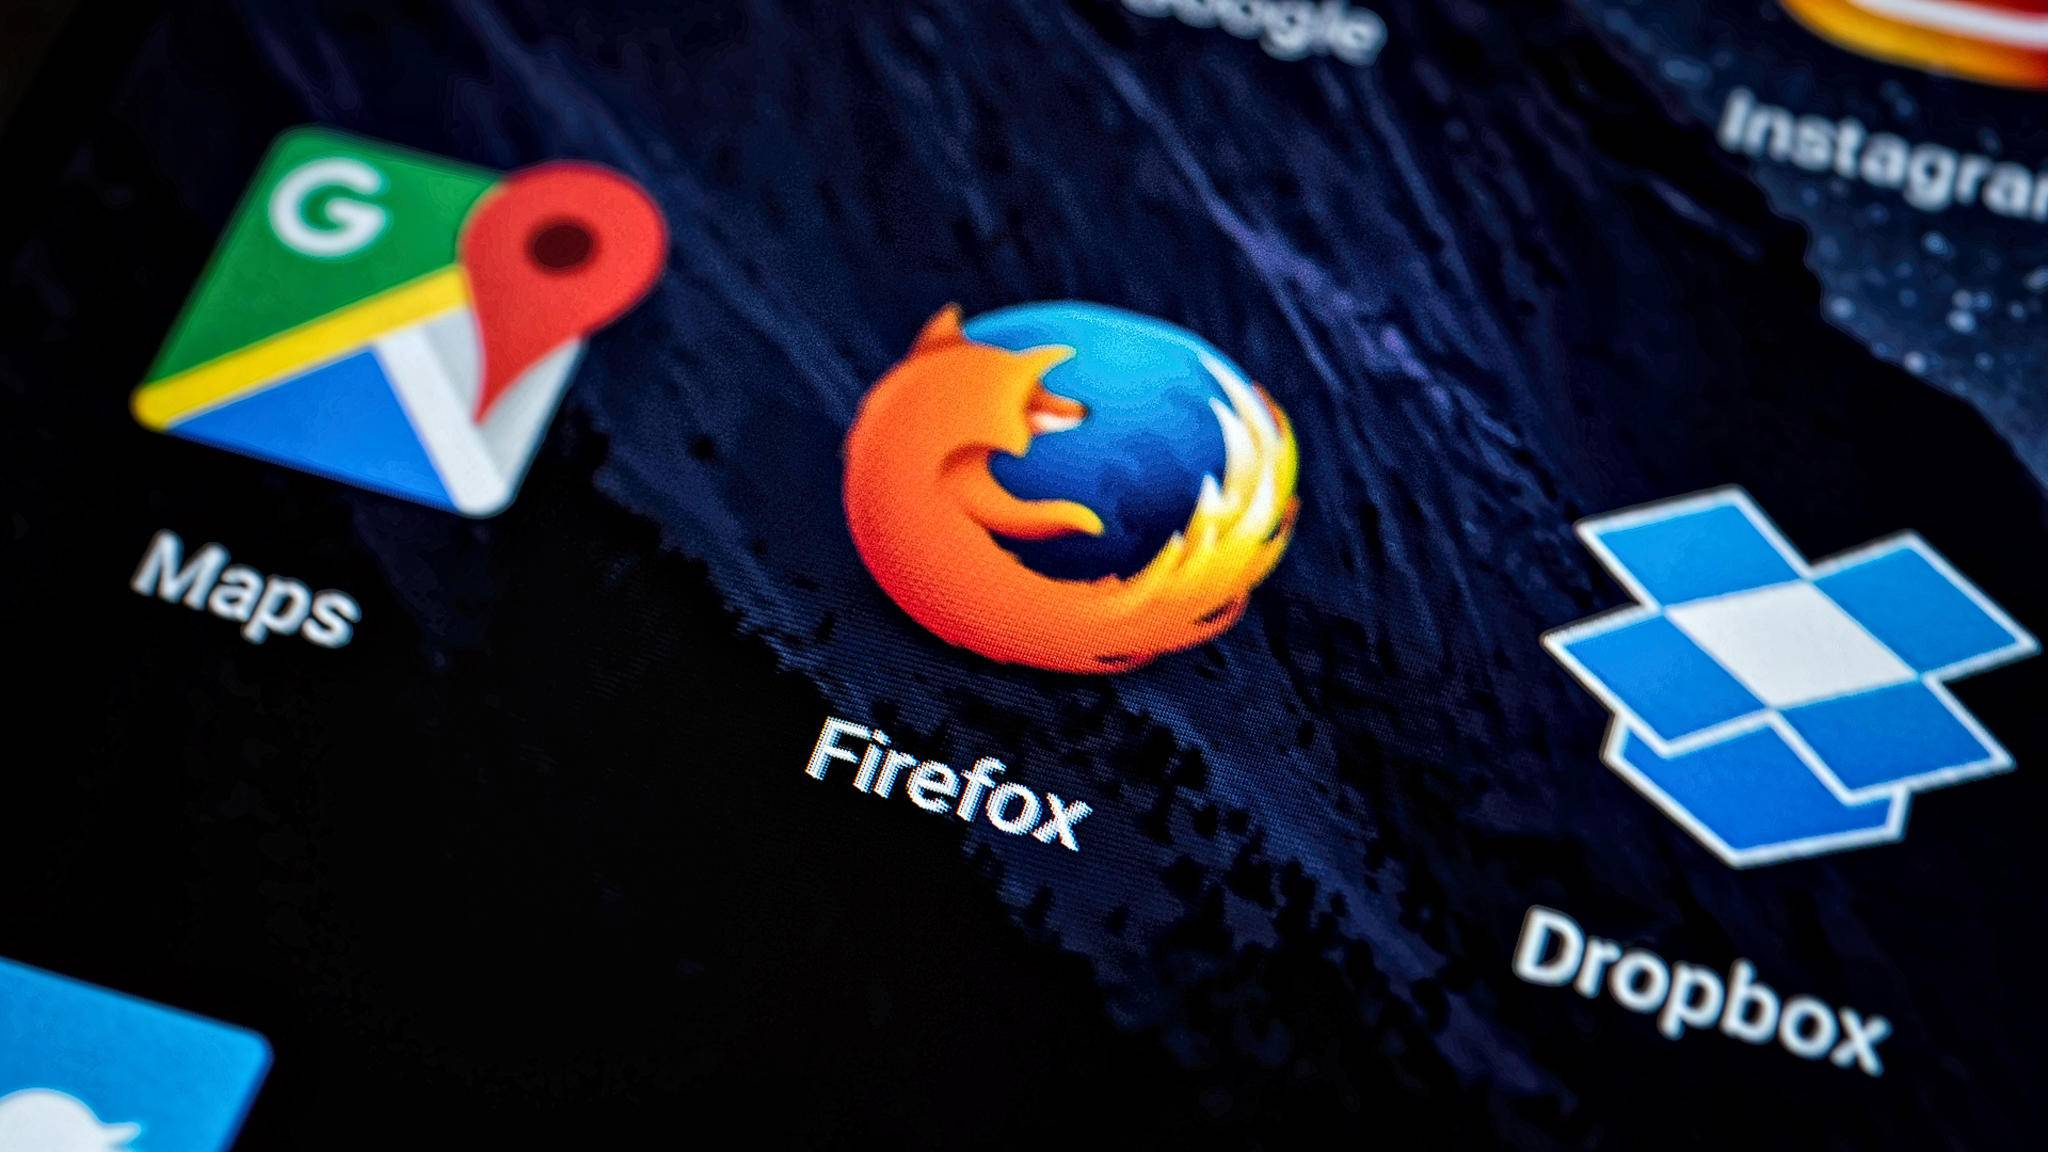 Firefox testet ein Download-Feature mit höherer Datensicherheit.